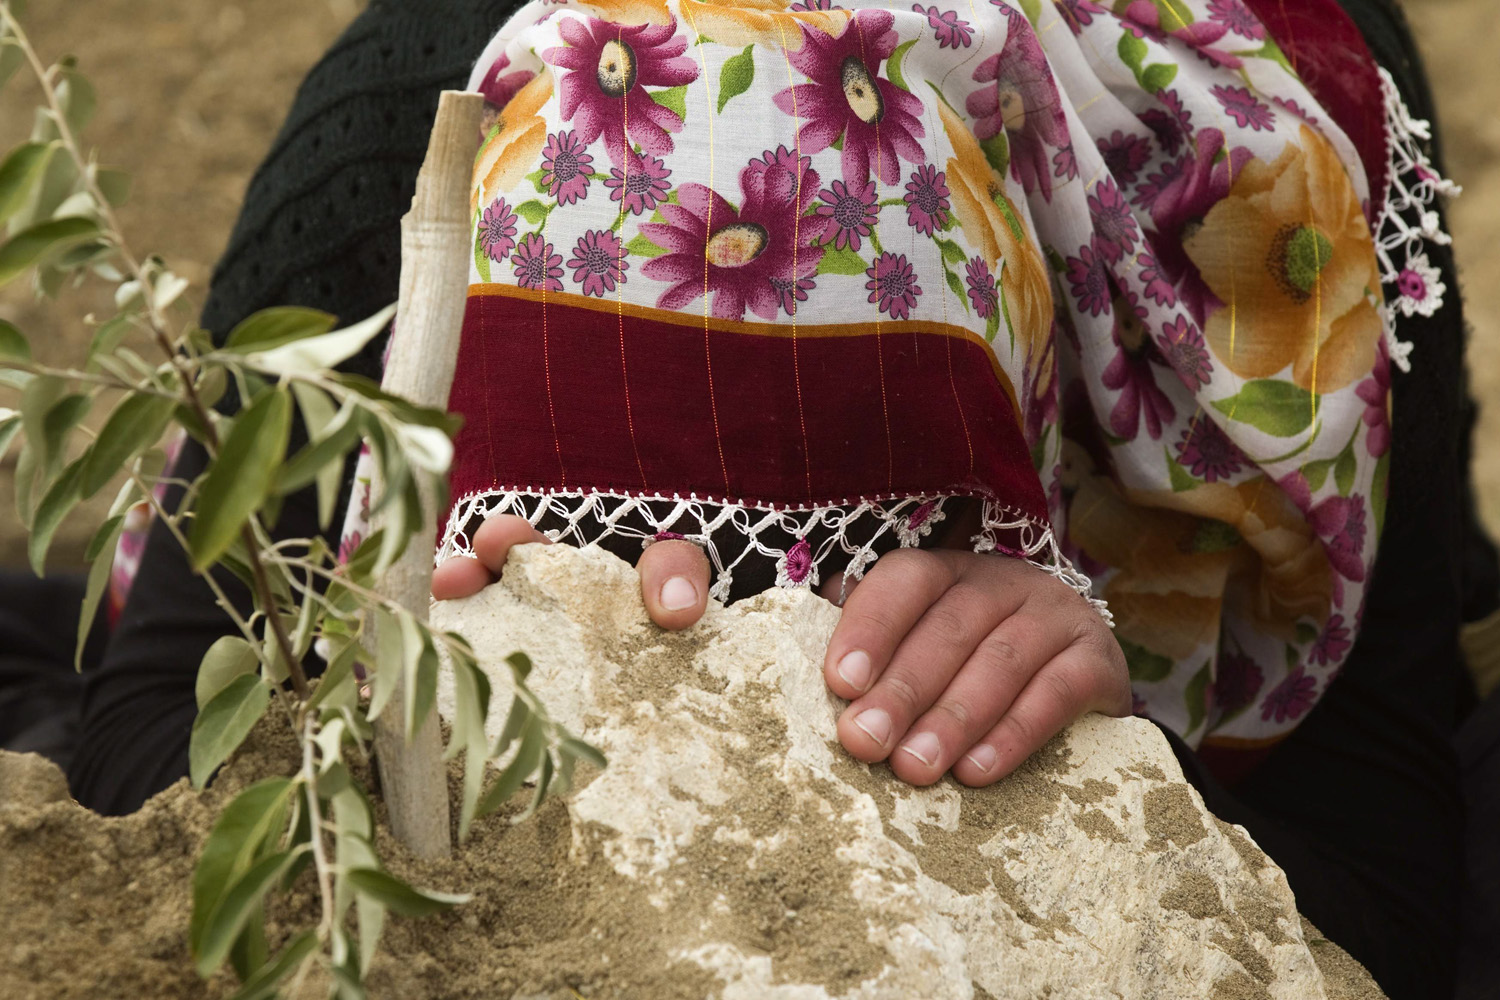 October 25, 2011. A woman mourns as she sits next to a grave of her relative, killed during an earthquake, in Ercis, Turkey.